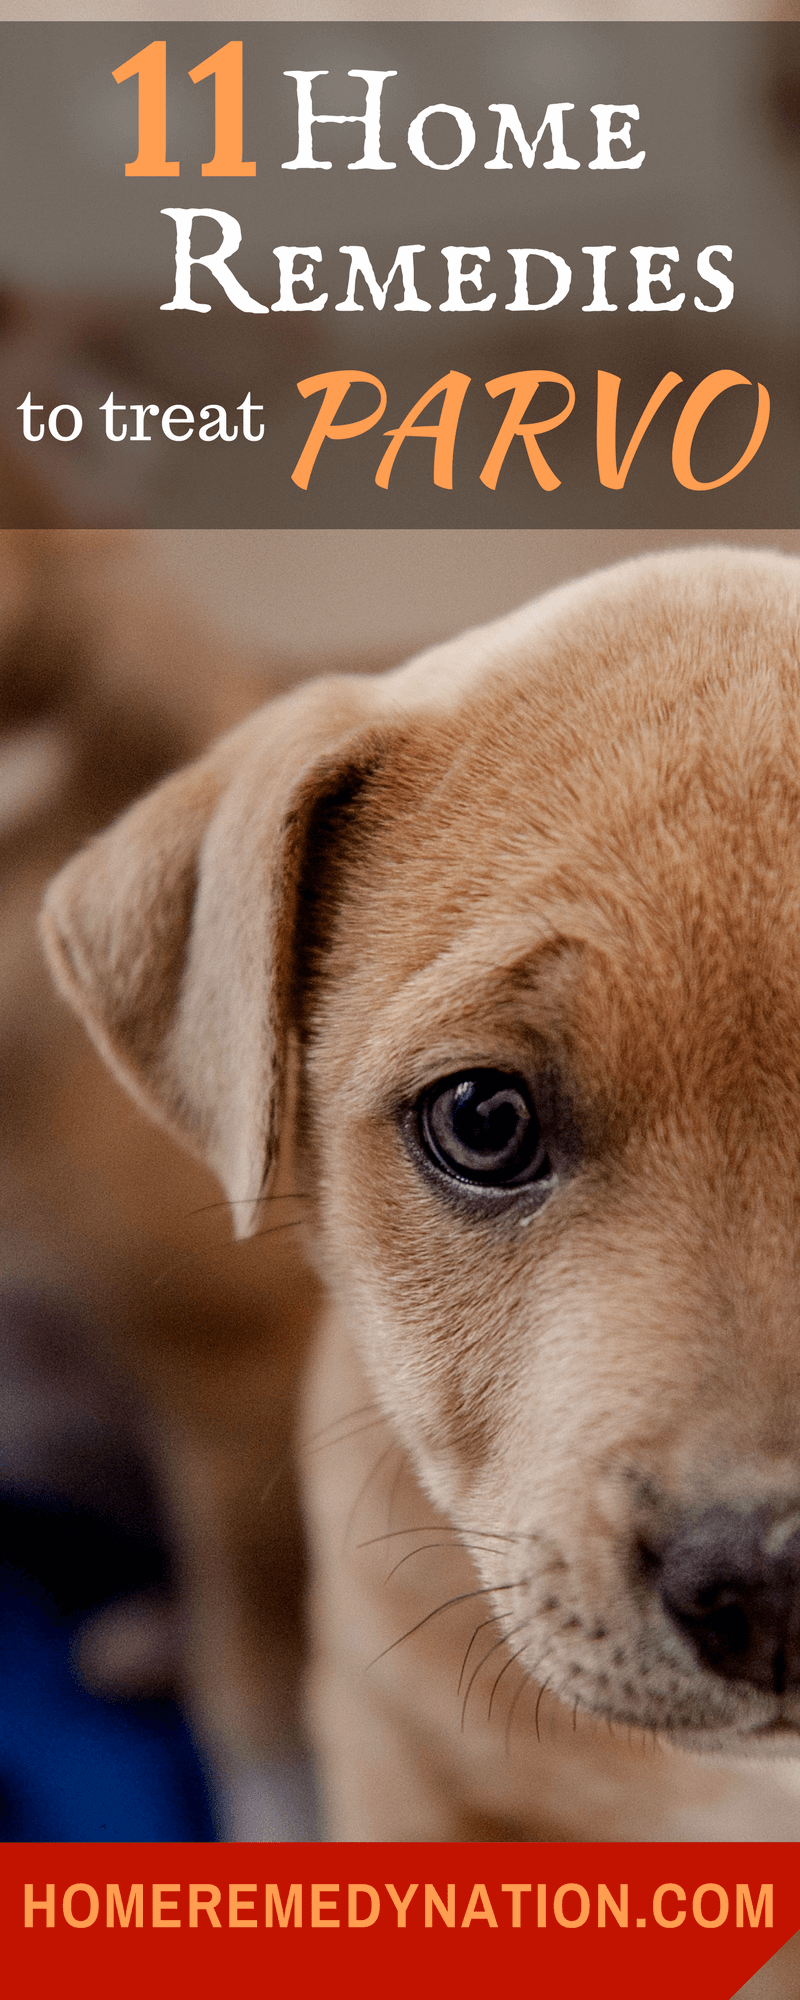 11 Working Home Remedies To Get Rid Of Parvo Treat The Dog At Home